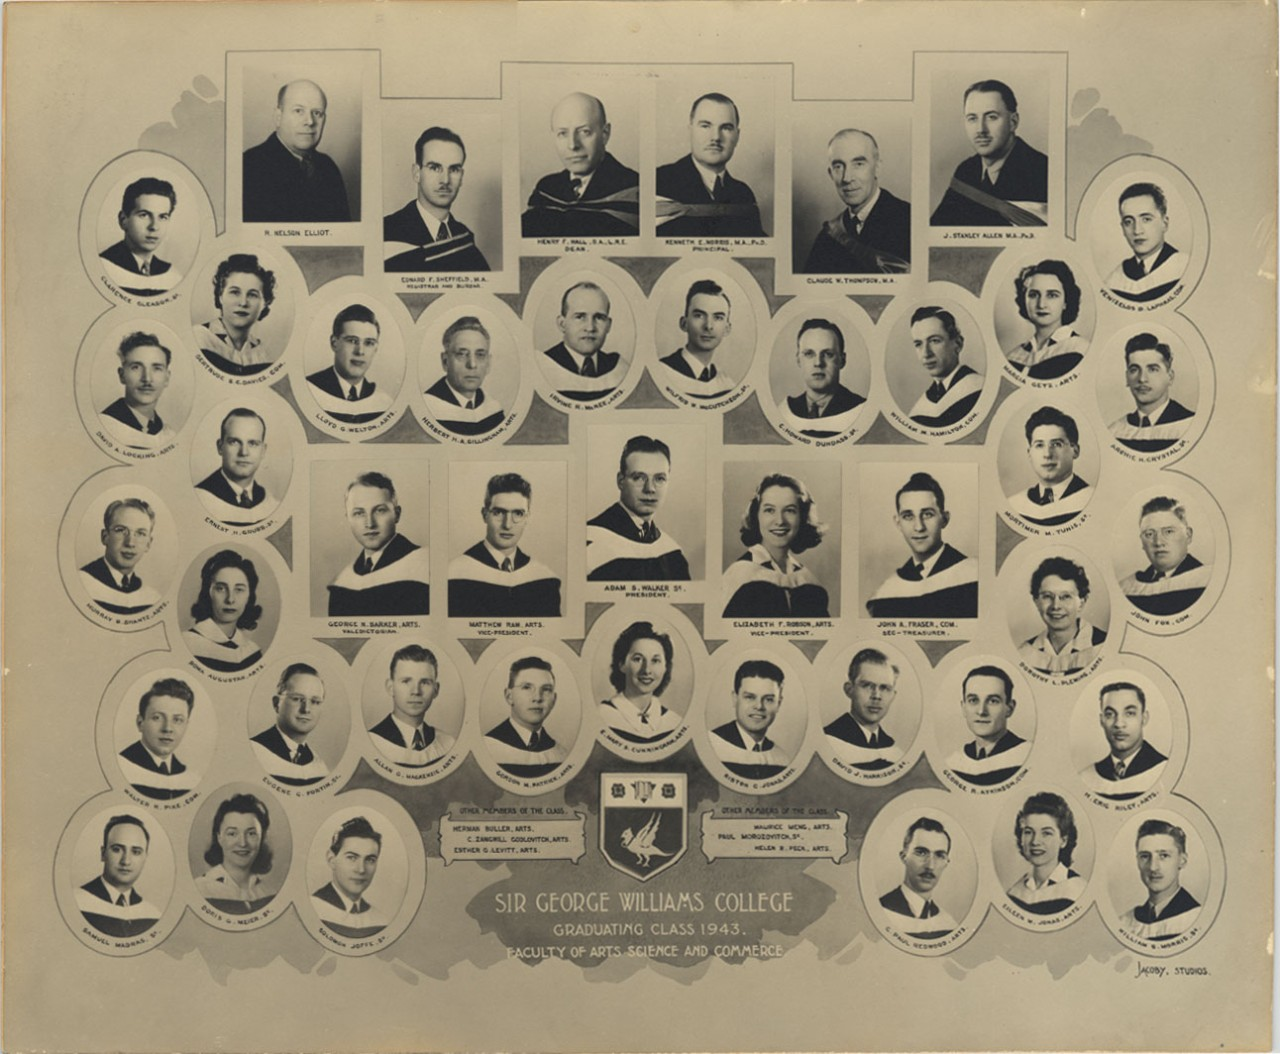 Sir George Williams College 1943 Graduating Class